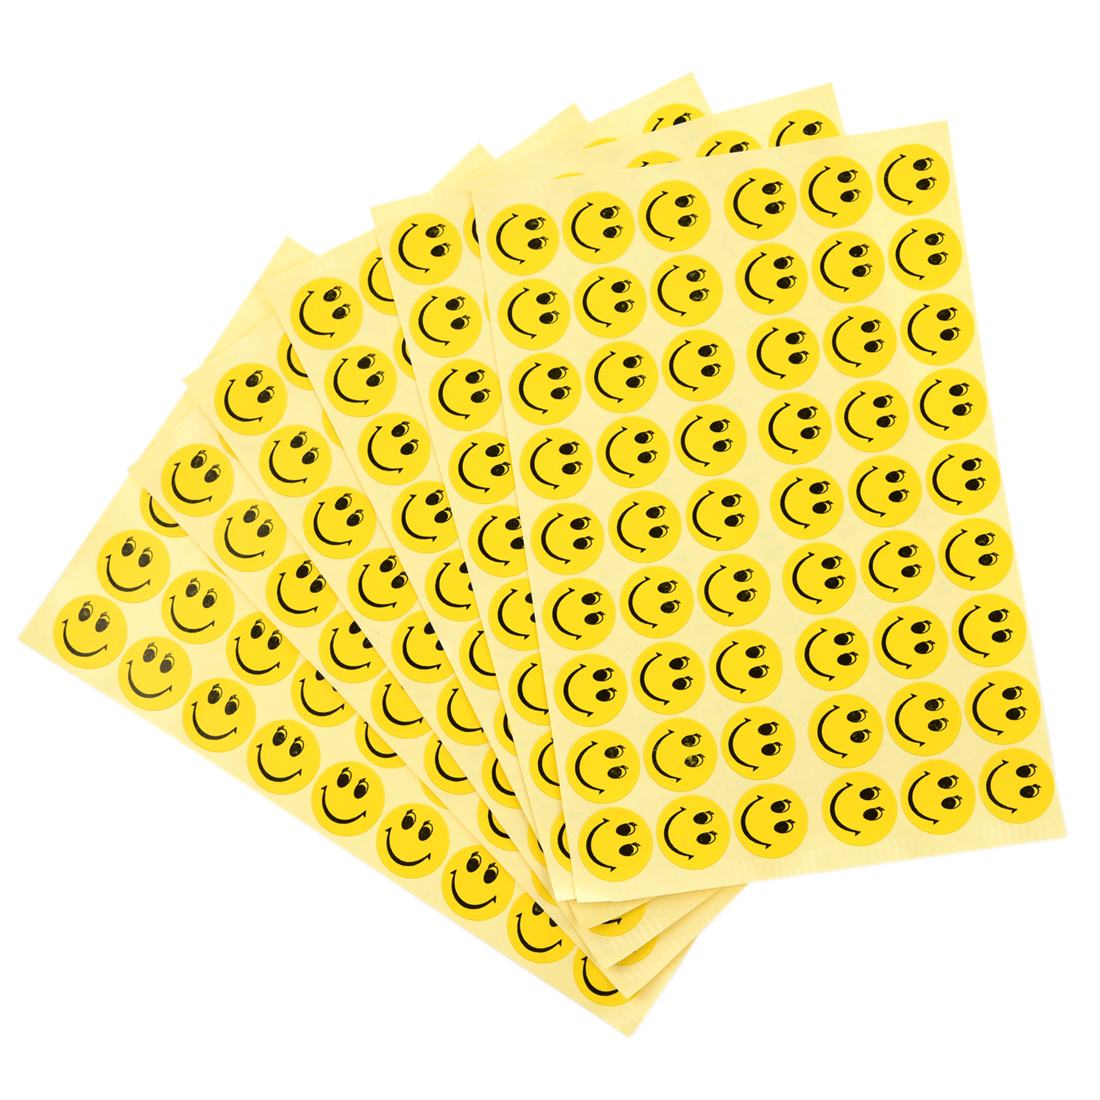 324 Pcs Smiley Face Children Reward Merit Praise Stickers For School Teacher Party